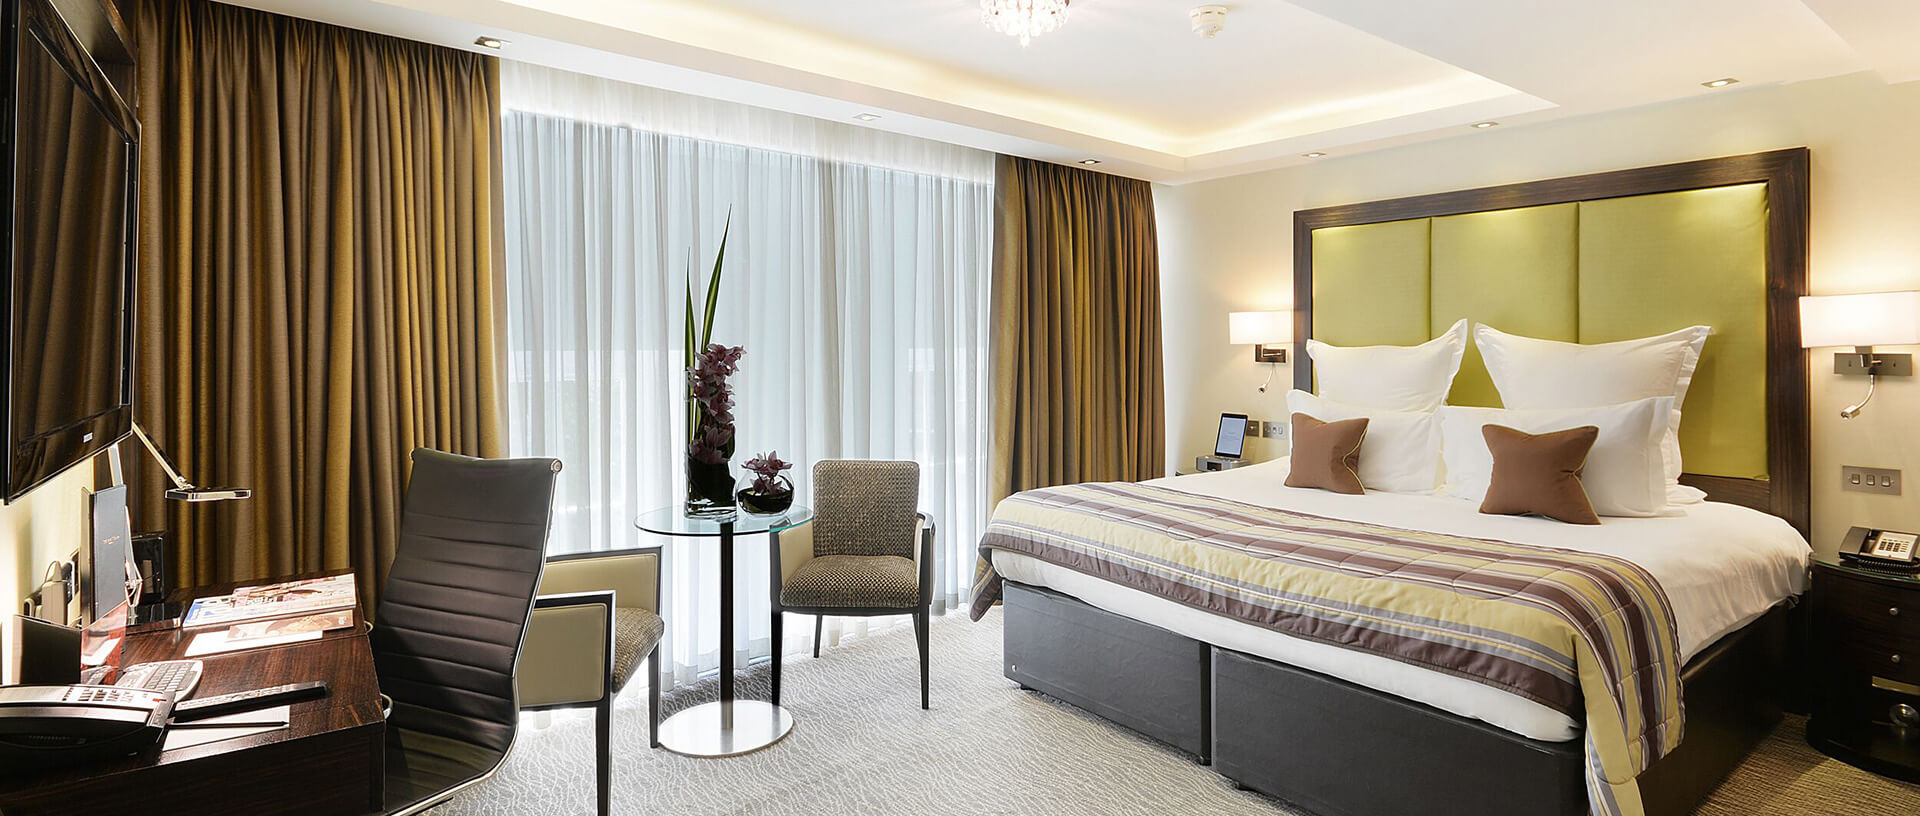 The Junior Suites at The Montcalm Marble Arch